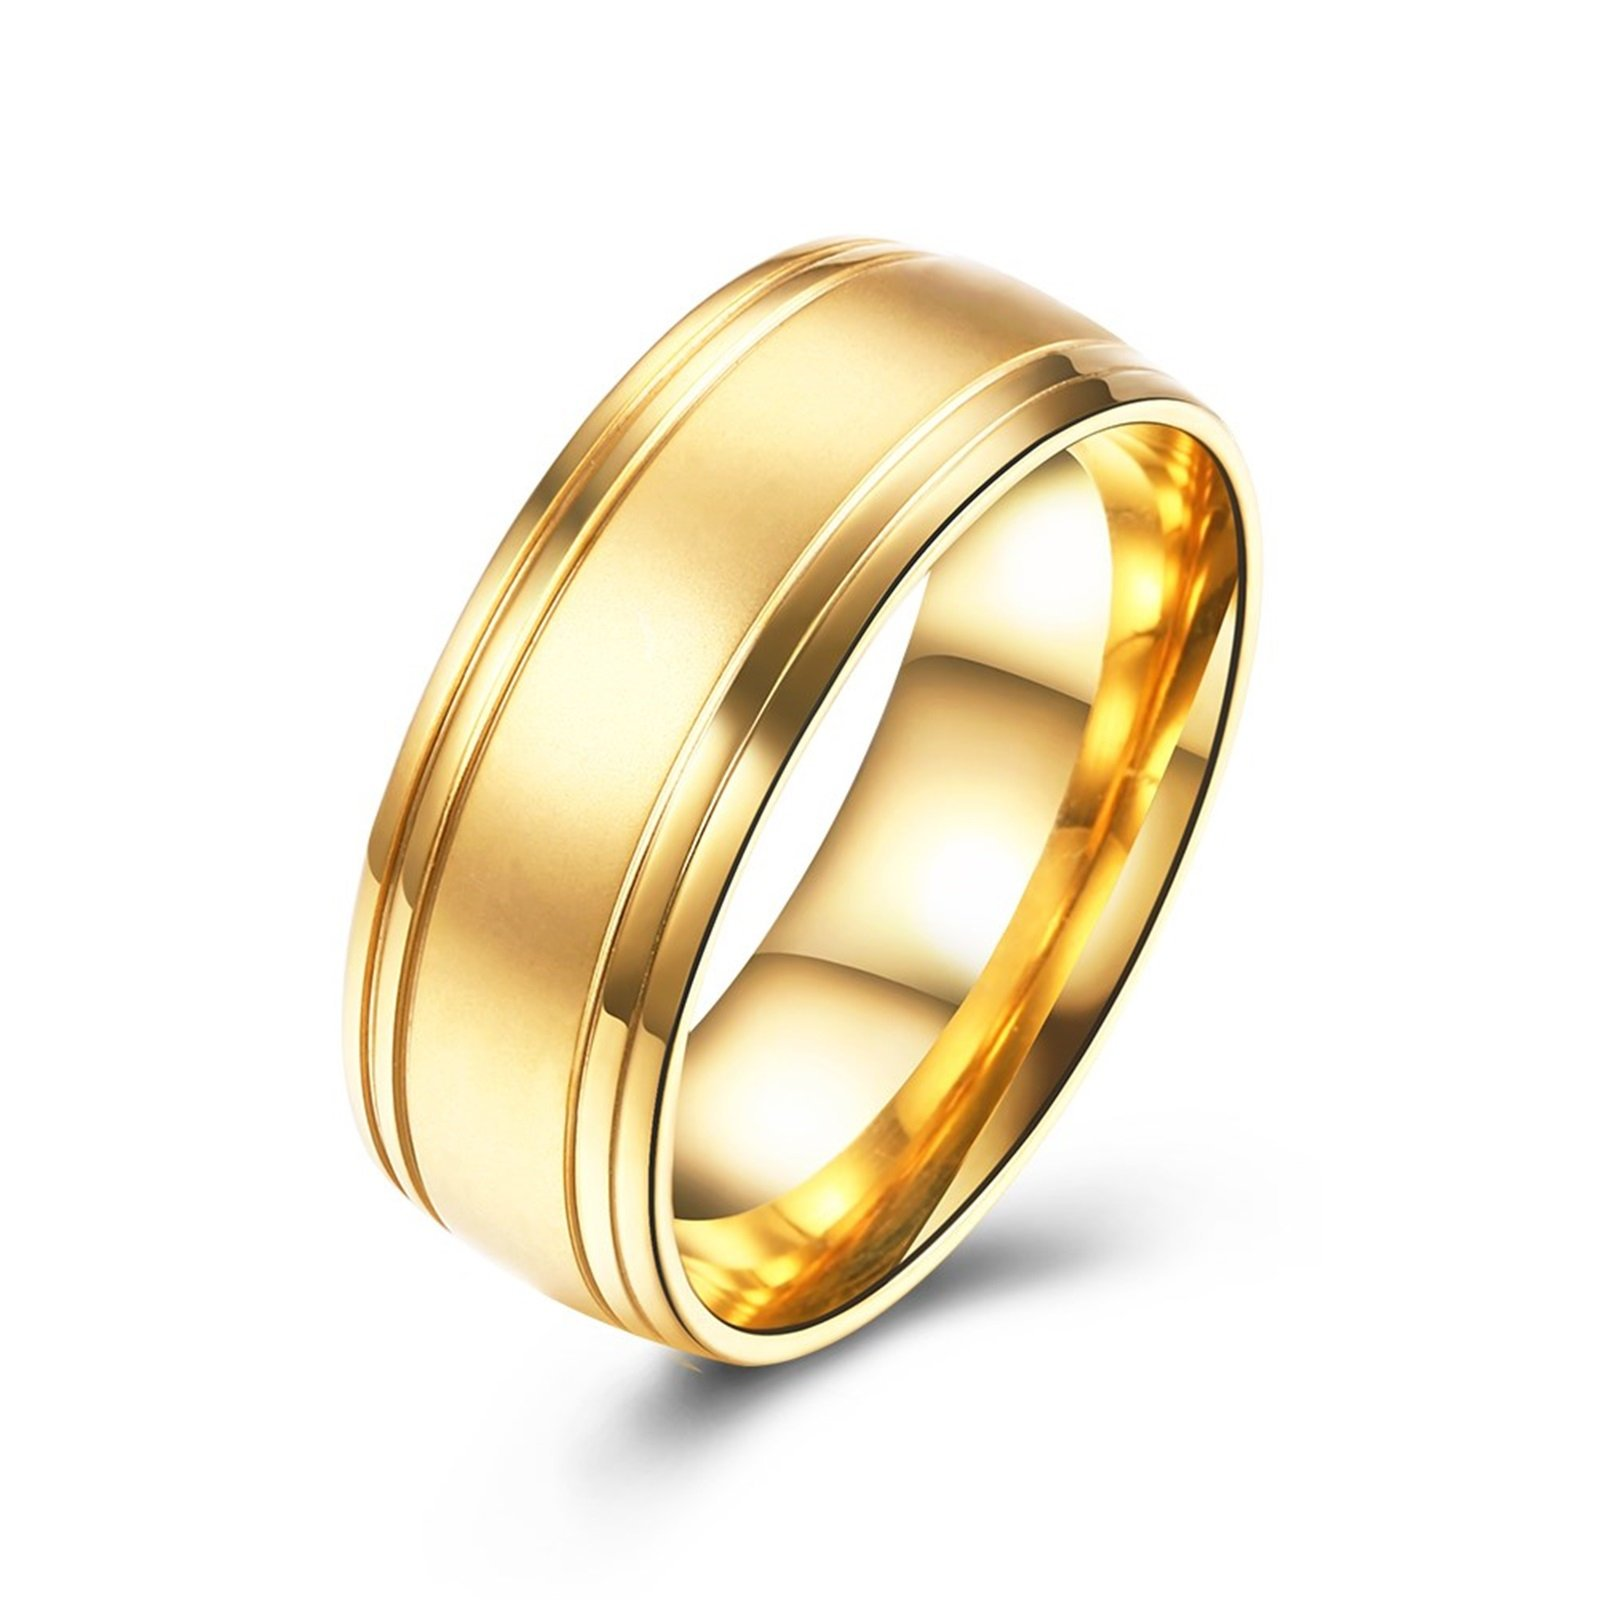 Epinki 8MM Brushed Plain Simple Stainless Steel Gold Wedding Ring Band Size 7 Men Accessories